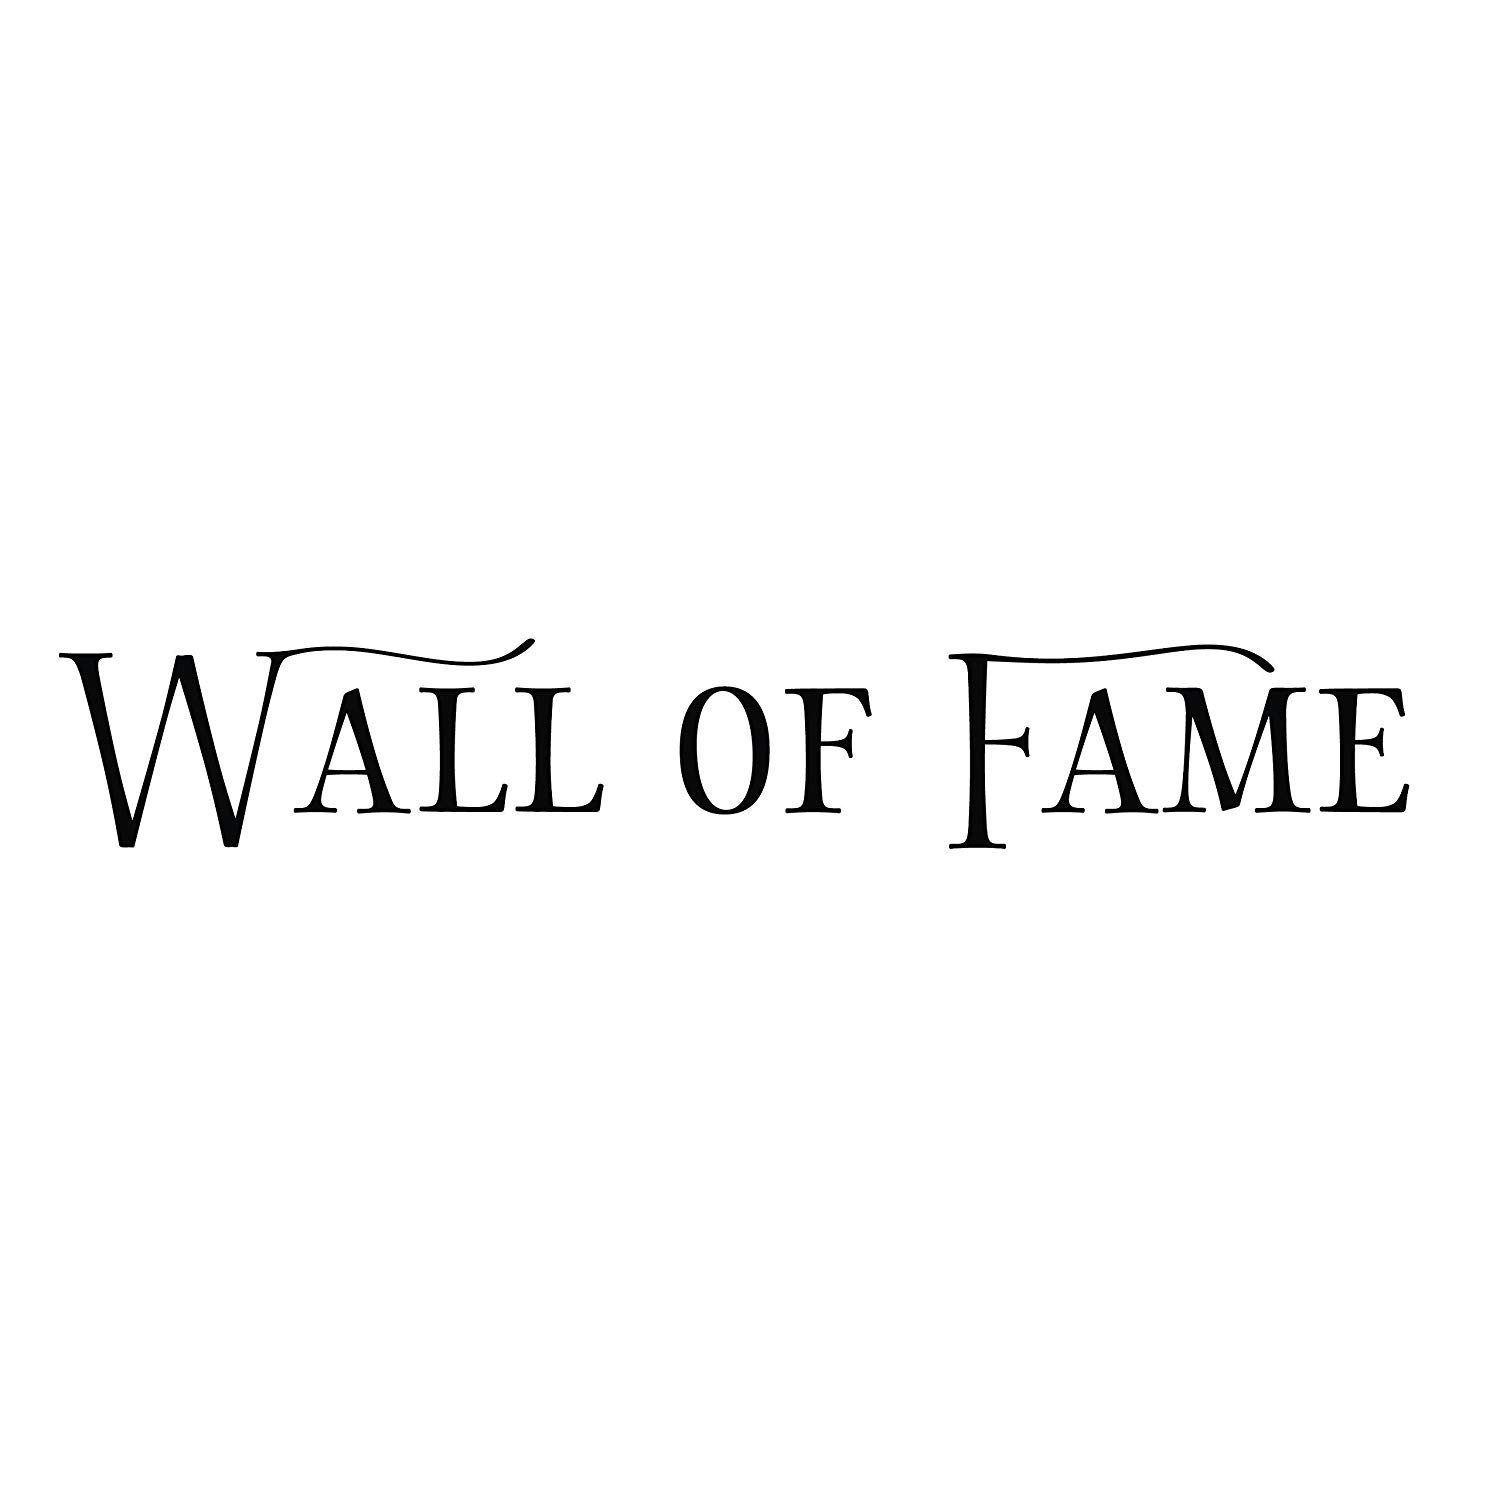 "Wall of Fame Vinyl Wall Decal by Wild Eyes Signs. Sports Room Decal, Vinyl Lettering, Rectangle Border Frame Sign, Wall Sticker, Vinyl Art, Custom Size: 28"" x 180"" Color: Black"